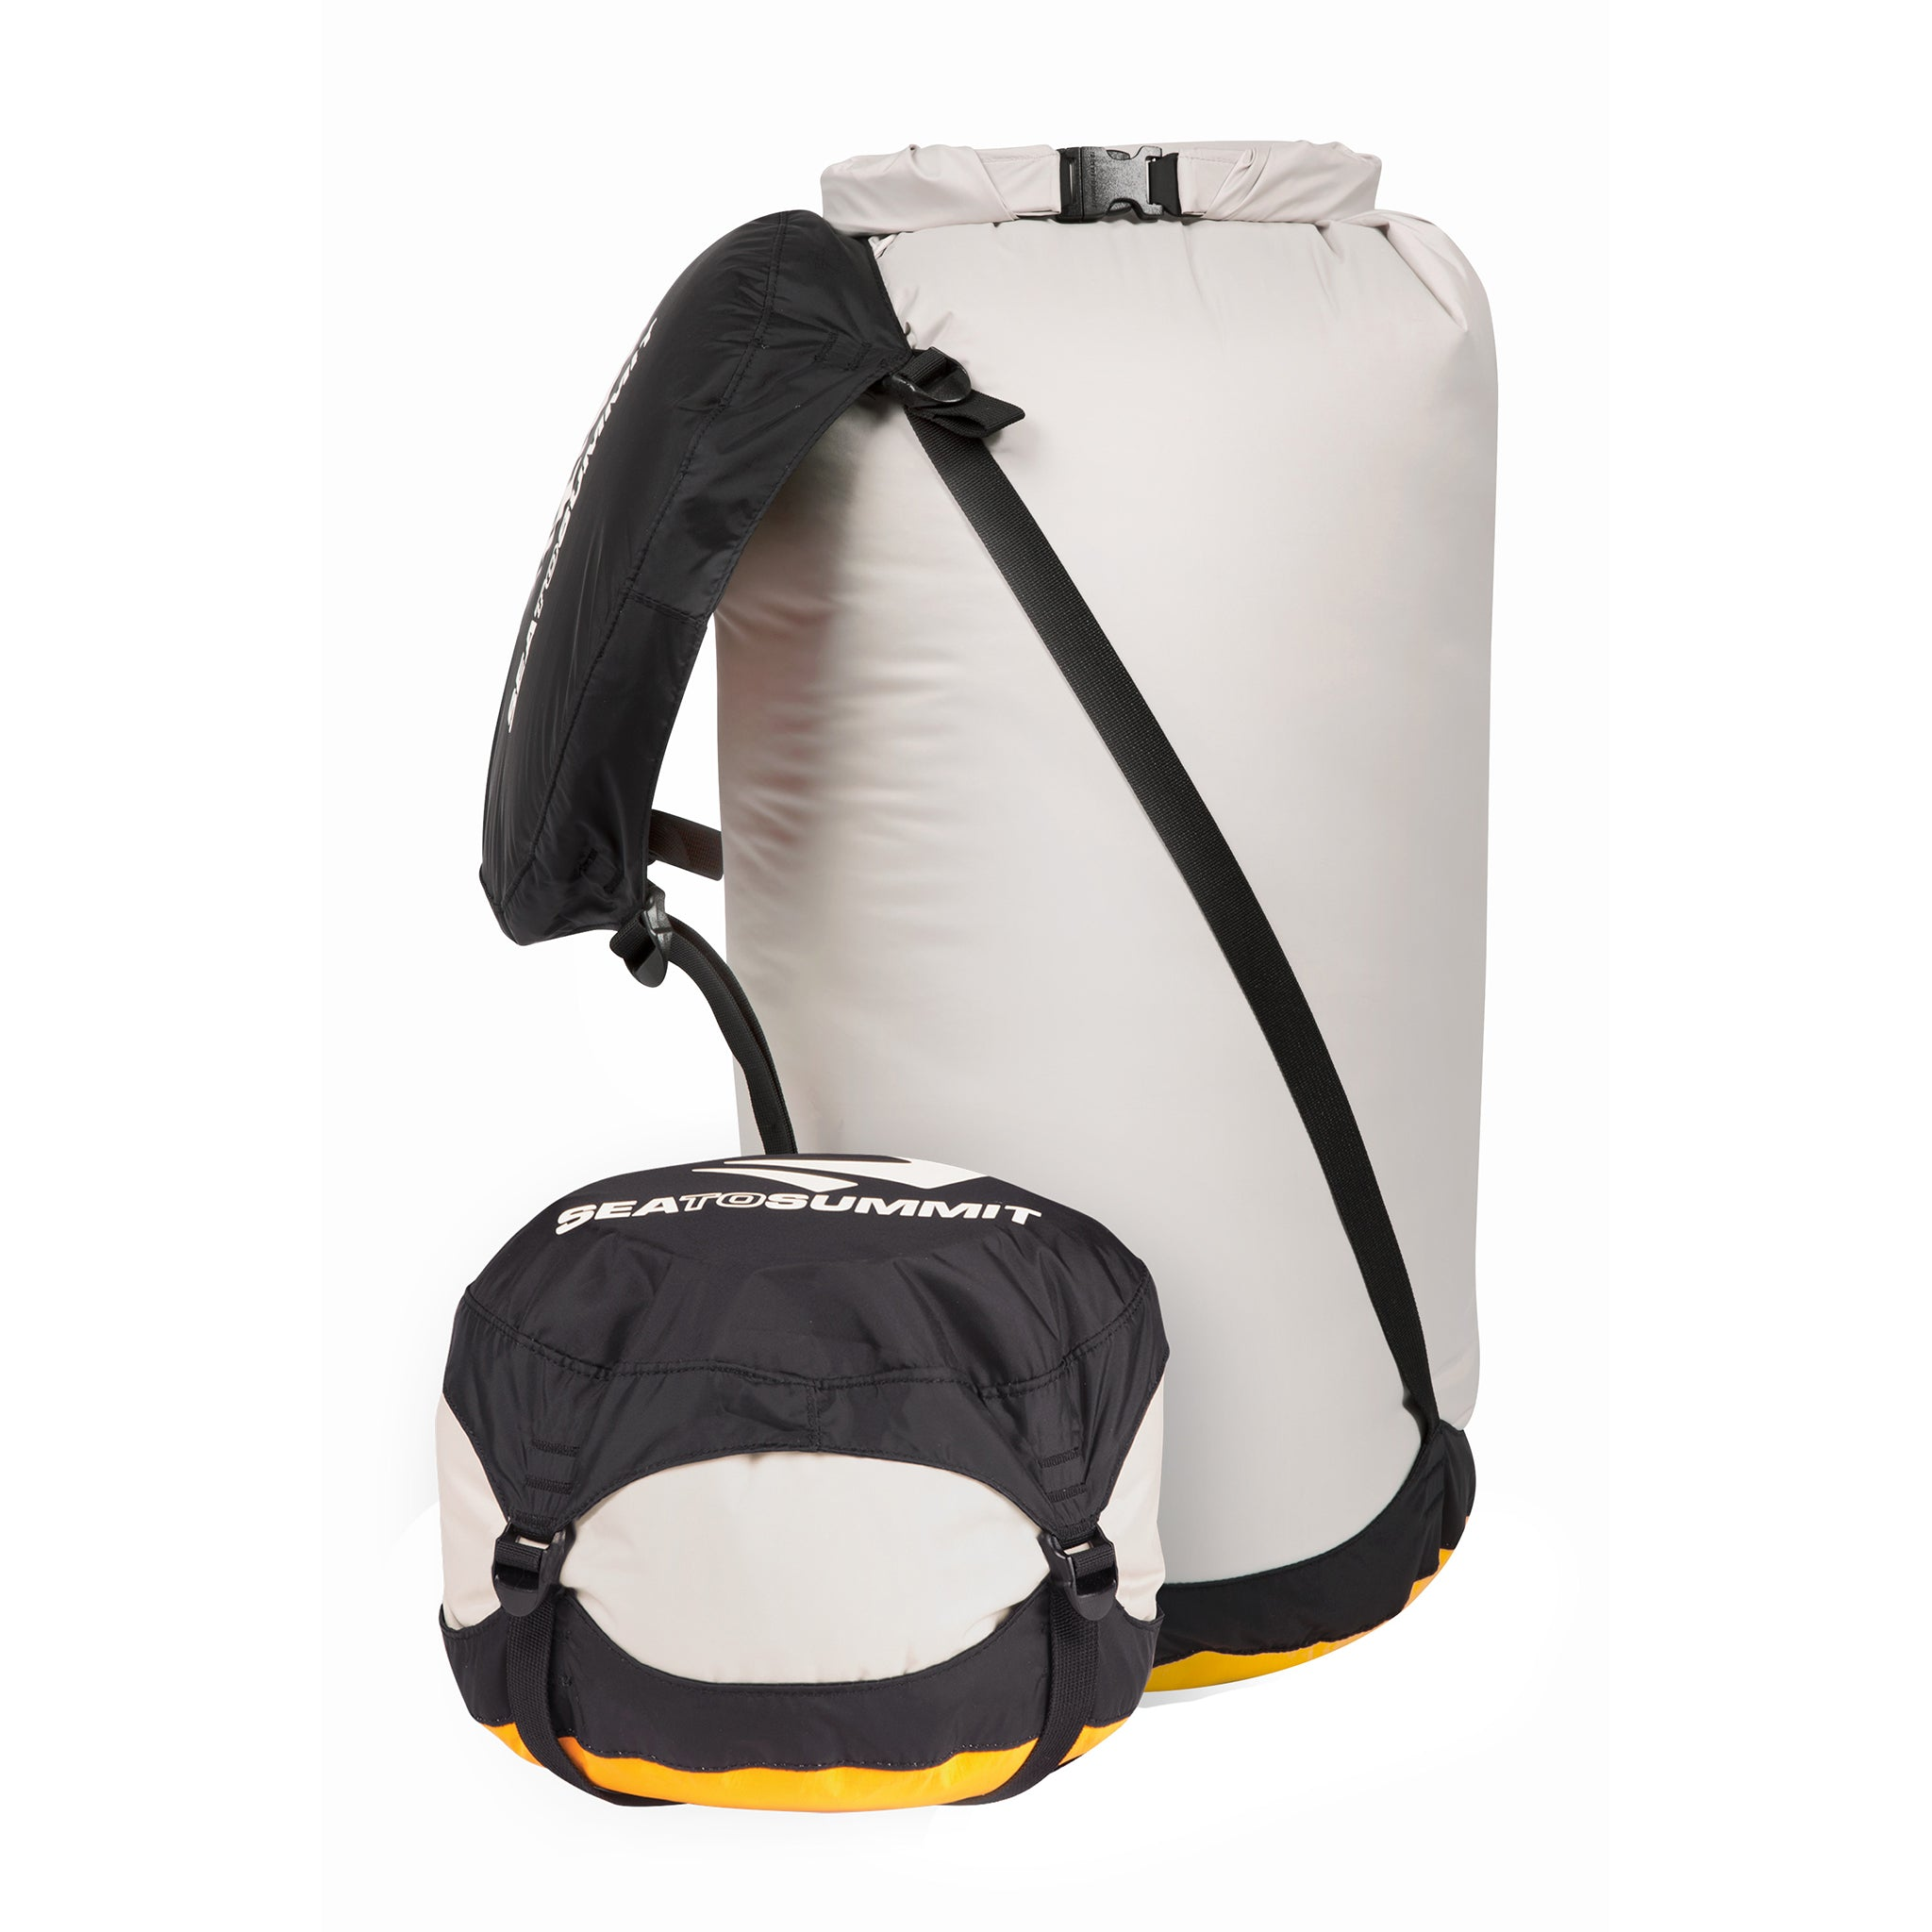 eVent Compression Dry Bag _ sleeping bag compression sack _ 30 liter